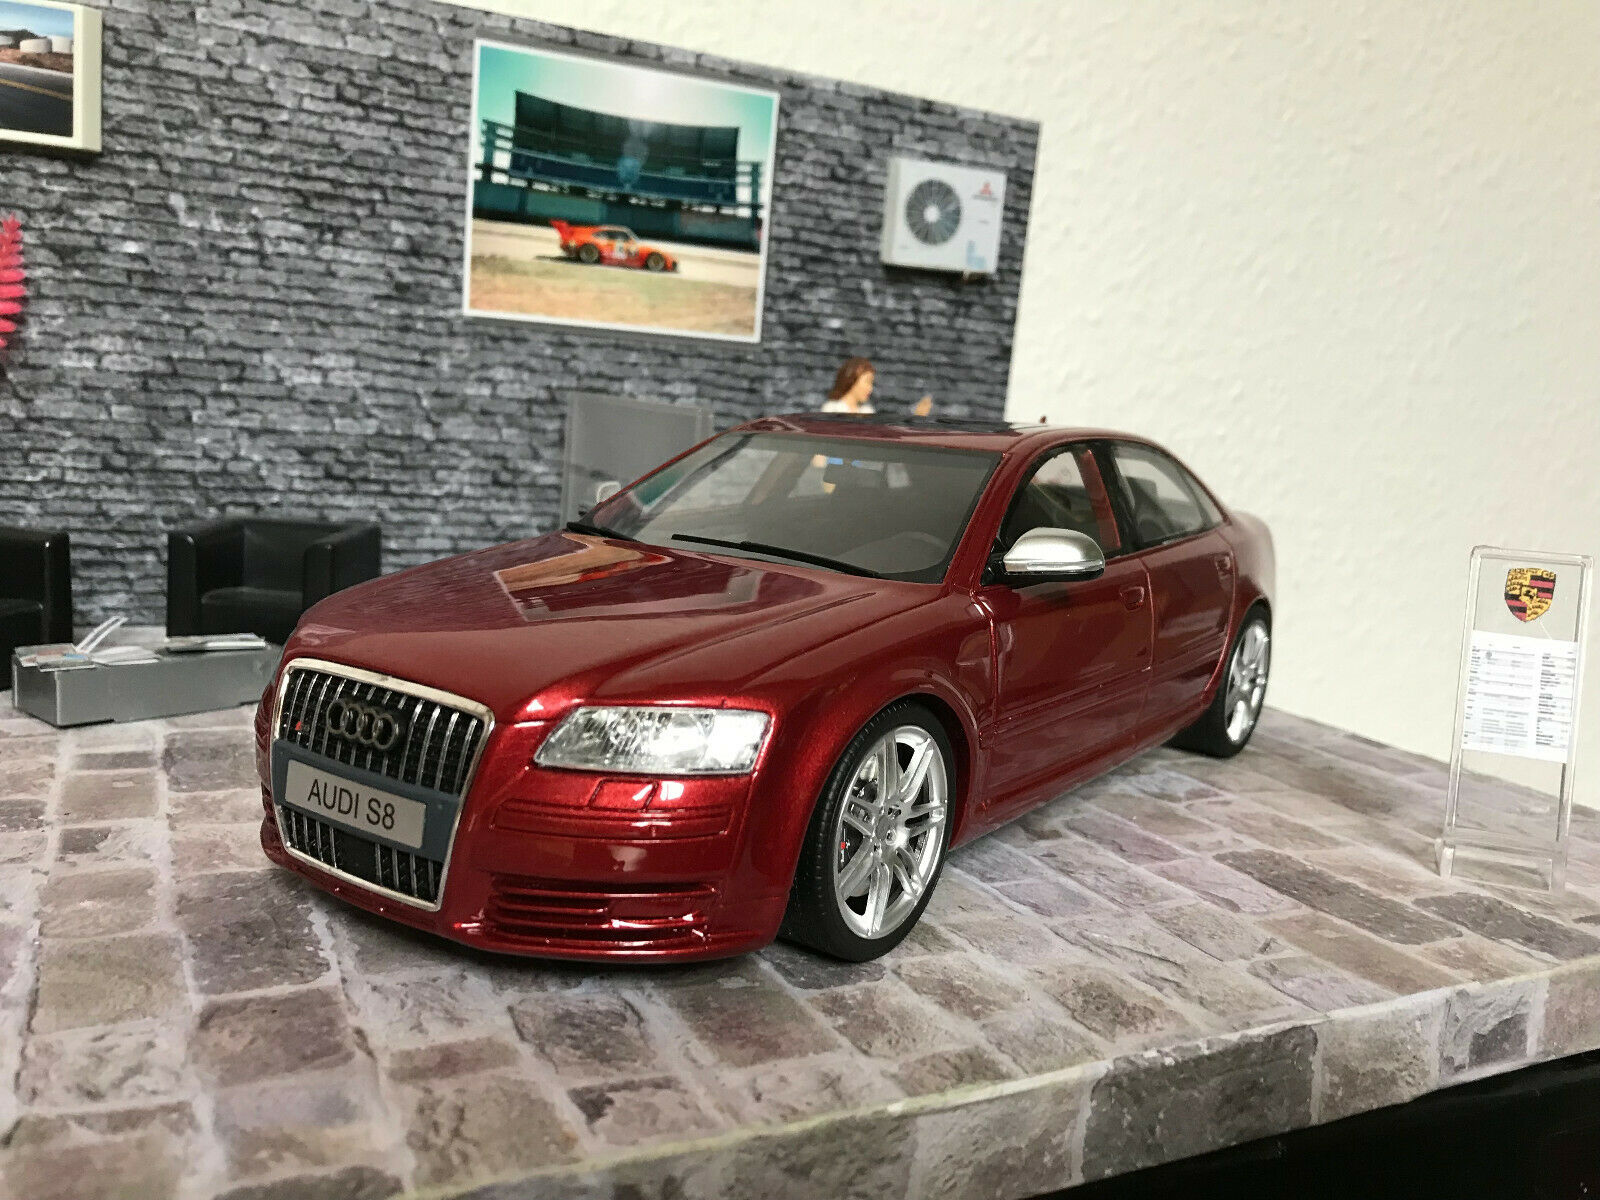 Audi S8 Otto Mobile 1 18 Tuning Conversion BNIB No 32 999  UNIQUE